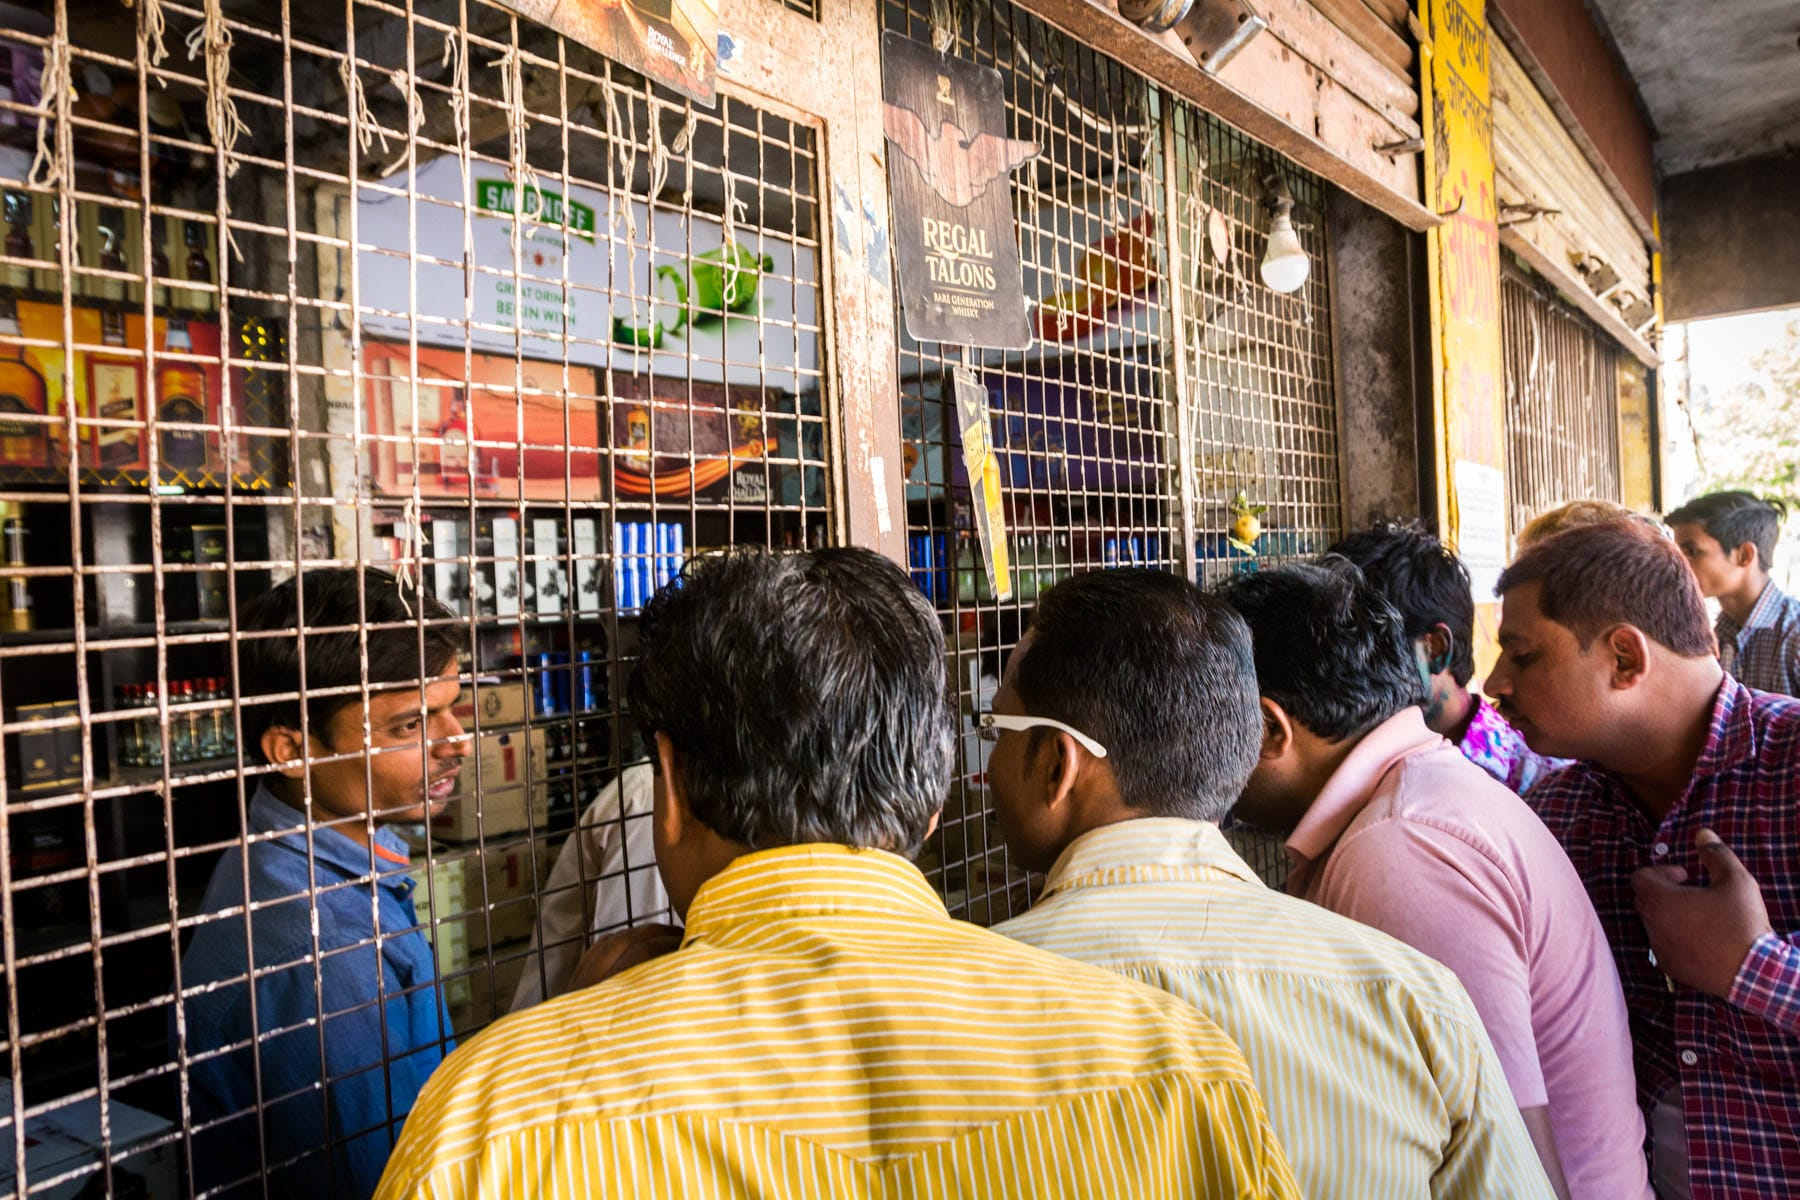 What you need know about playing Holi in Varanasi, India - Crowd at the wine shop in Varanasi before Holi - Lost With Purpose